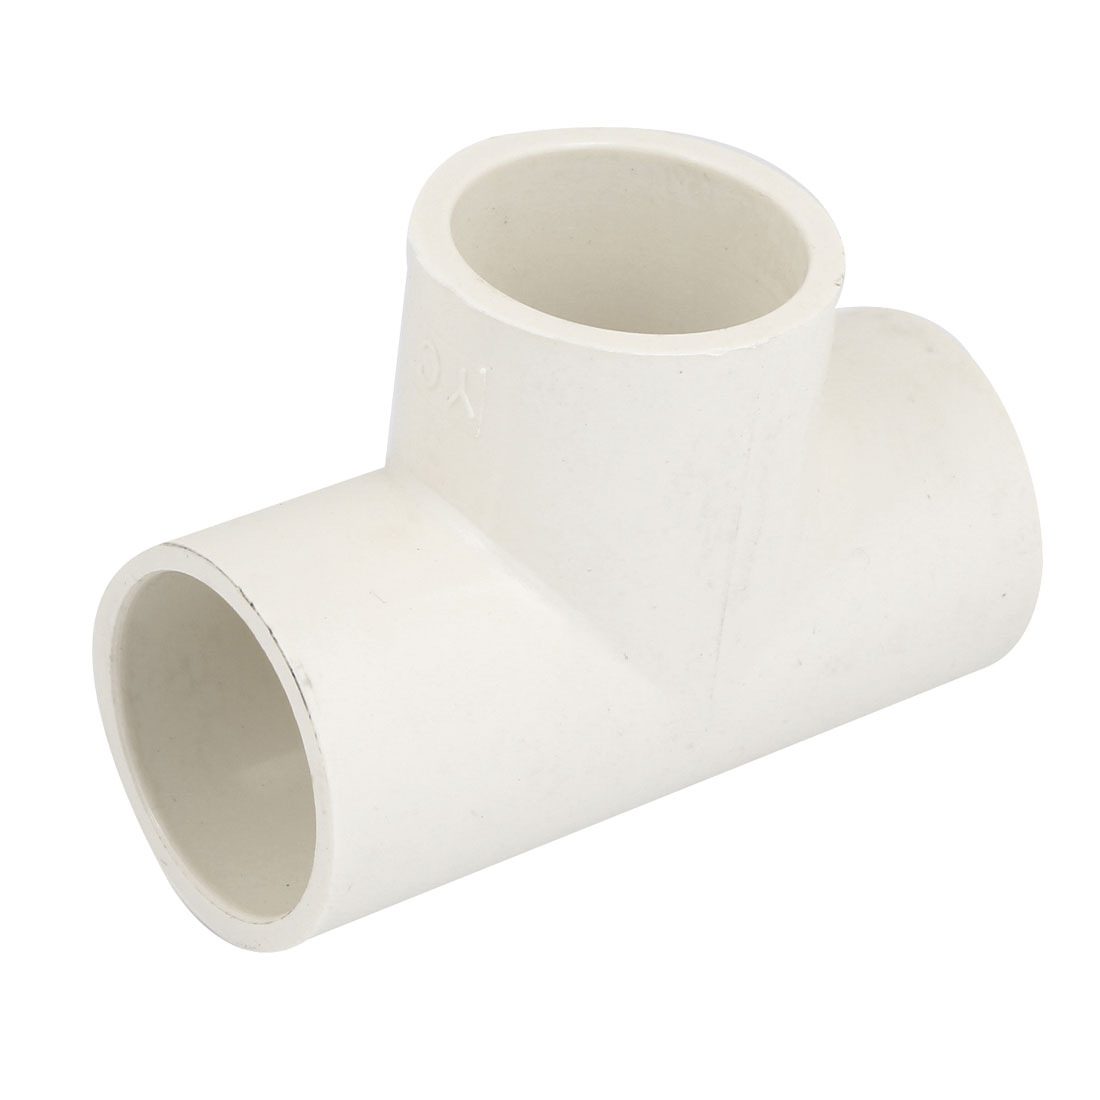 White PVC Tee Type Piping Hose Tube Adapter Connectors Coupler 32mm Diameter